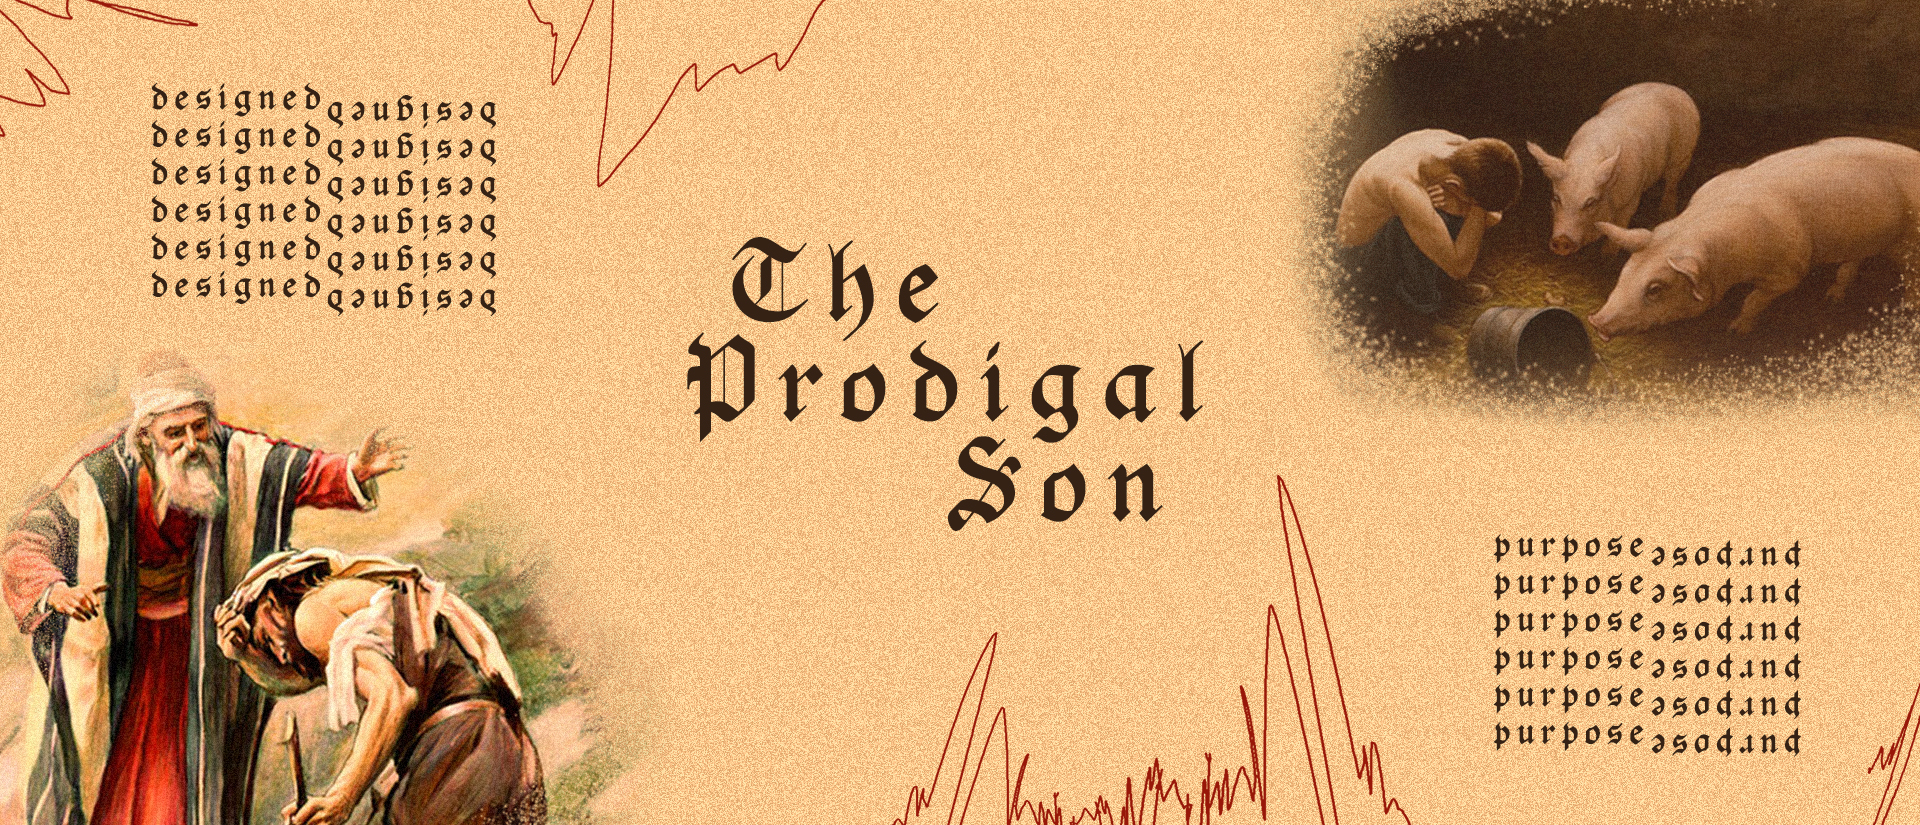 The Prodigal Son.jpg